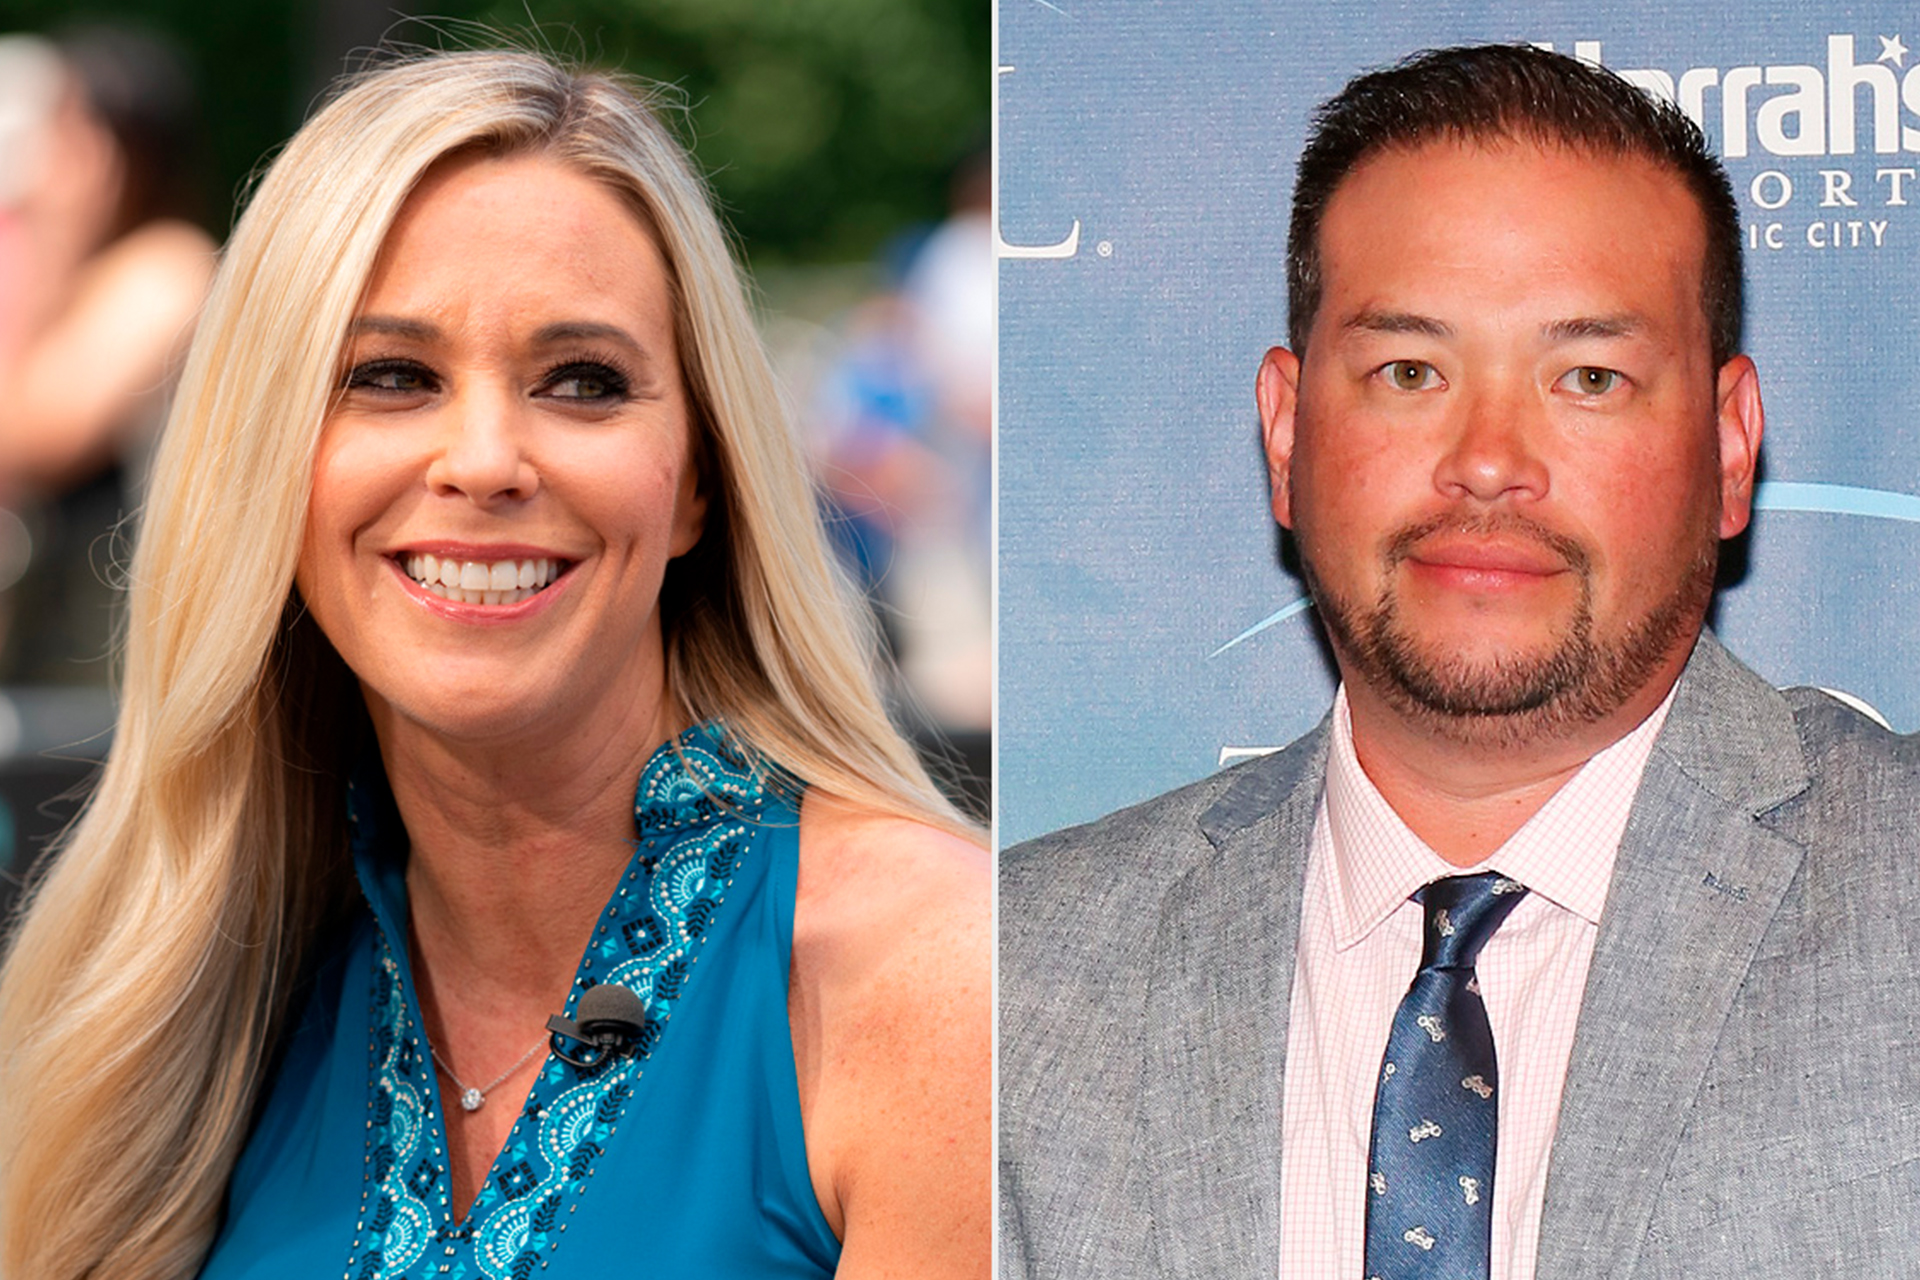 People Now: All the Details on How Exes Kate and Jon Gosselin Celebrated Sextuplets' 16th Birthday - Watch the Full Episode